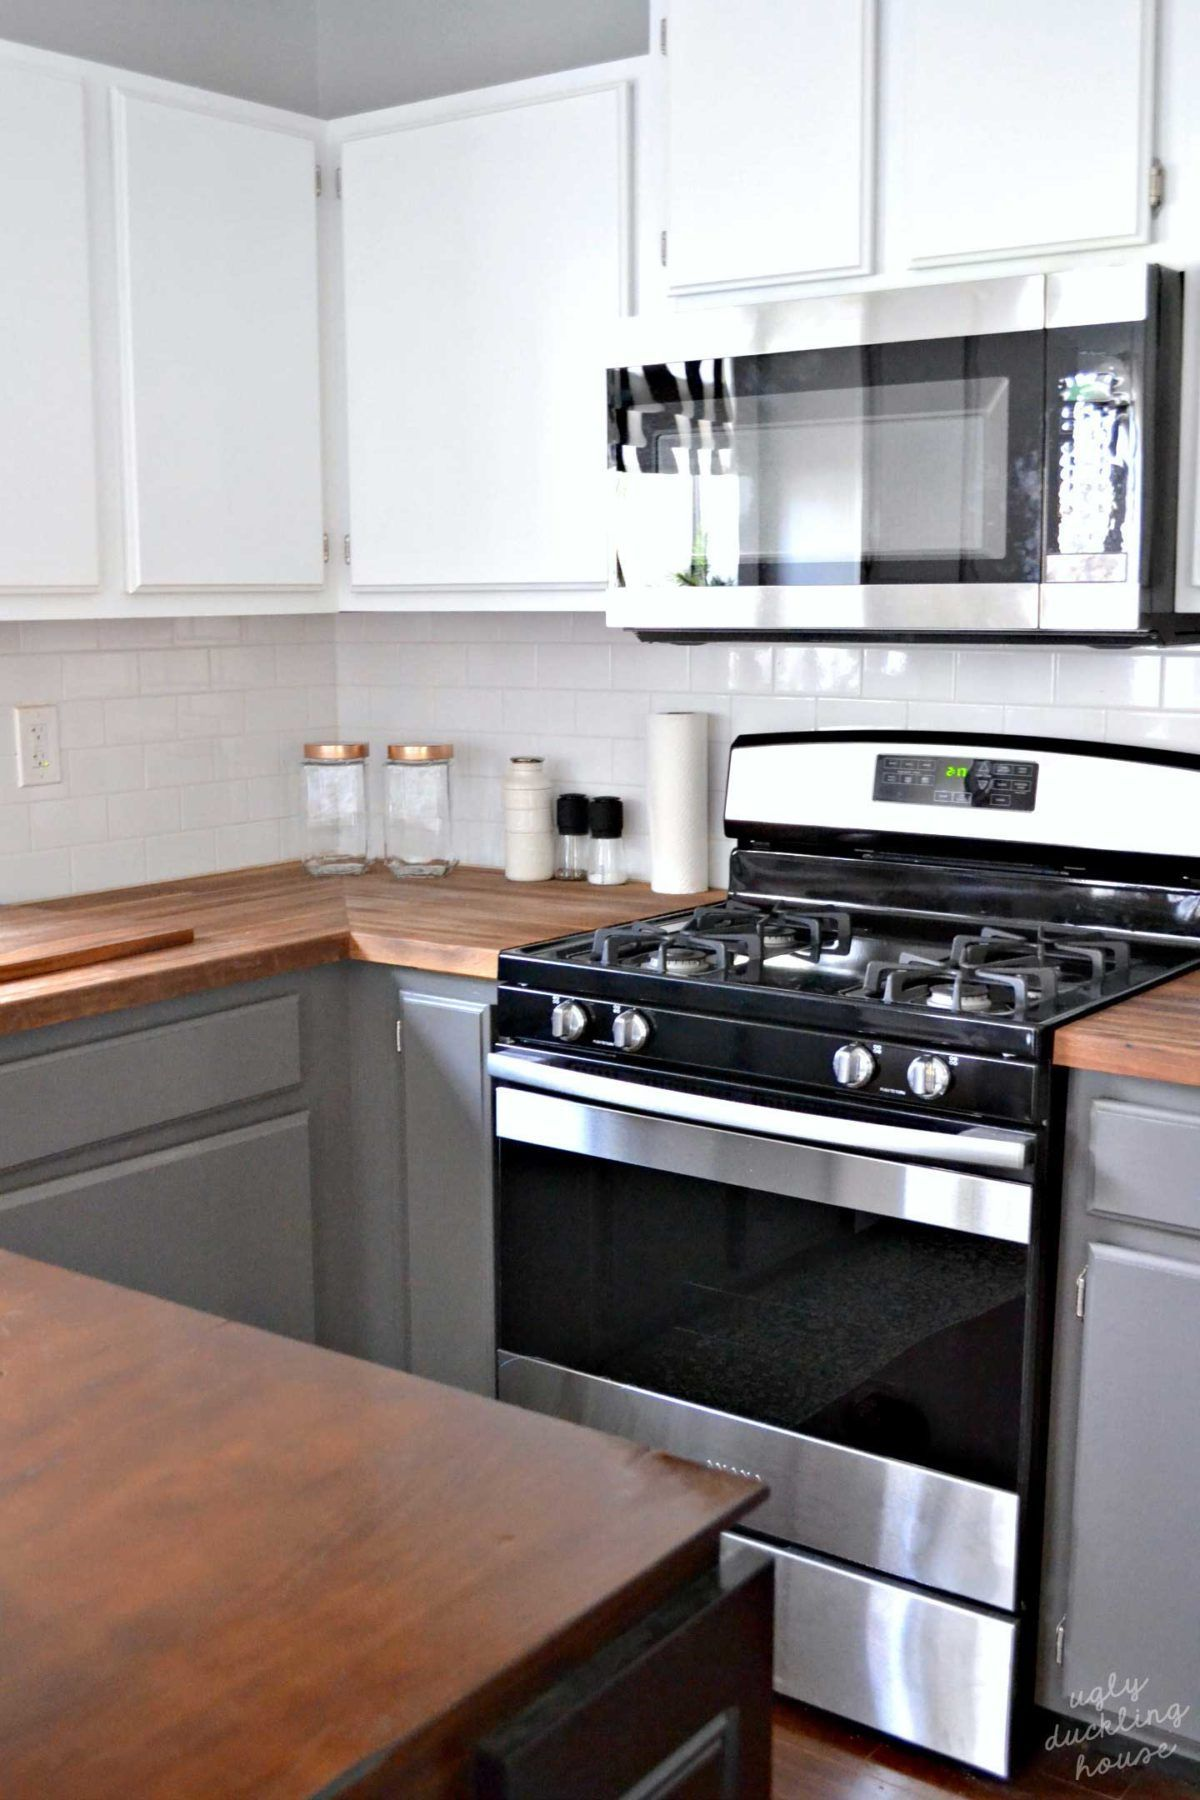 WOW! White and gray kitchen with stainless and black appliances... love the butcher block countertop the most. #kitchen #diykitchen #kitcheninspiration #whitecabinets #80skitchen #kitchenmakeover #beforeandafter #butcherblock #graycabinets